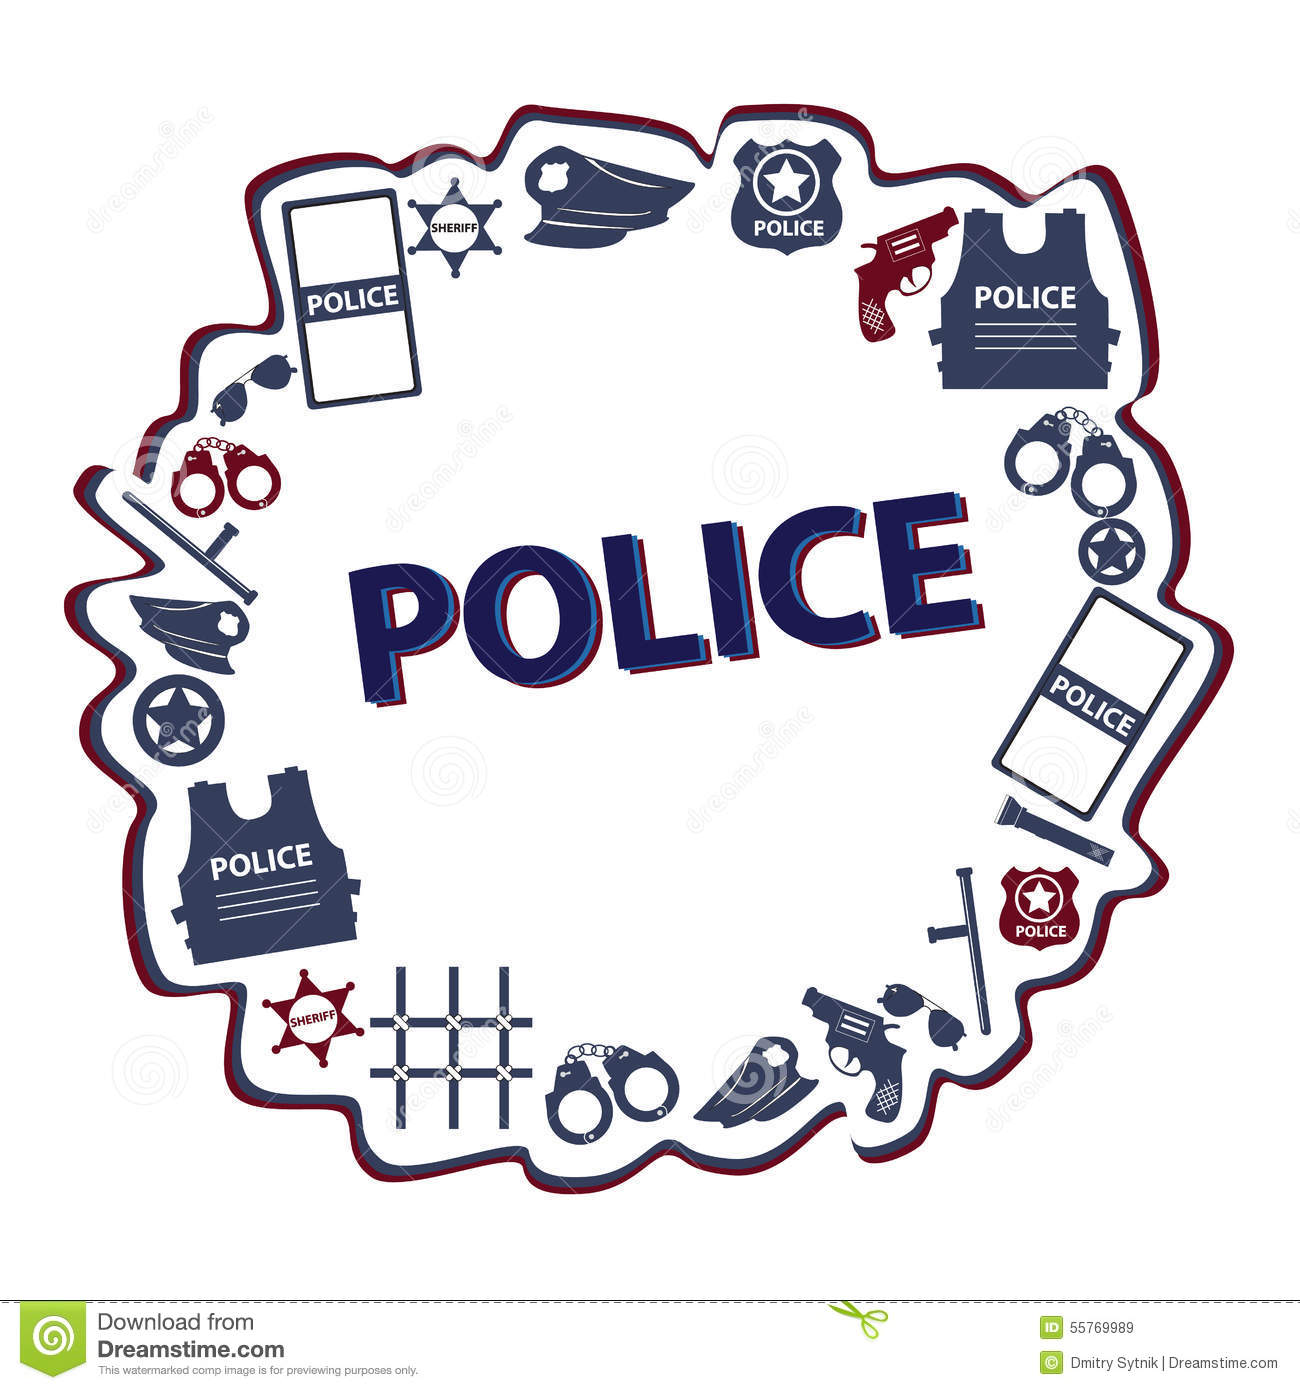 Vector Design Police Symbols In Round Form With Dark Colors Stock